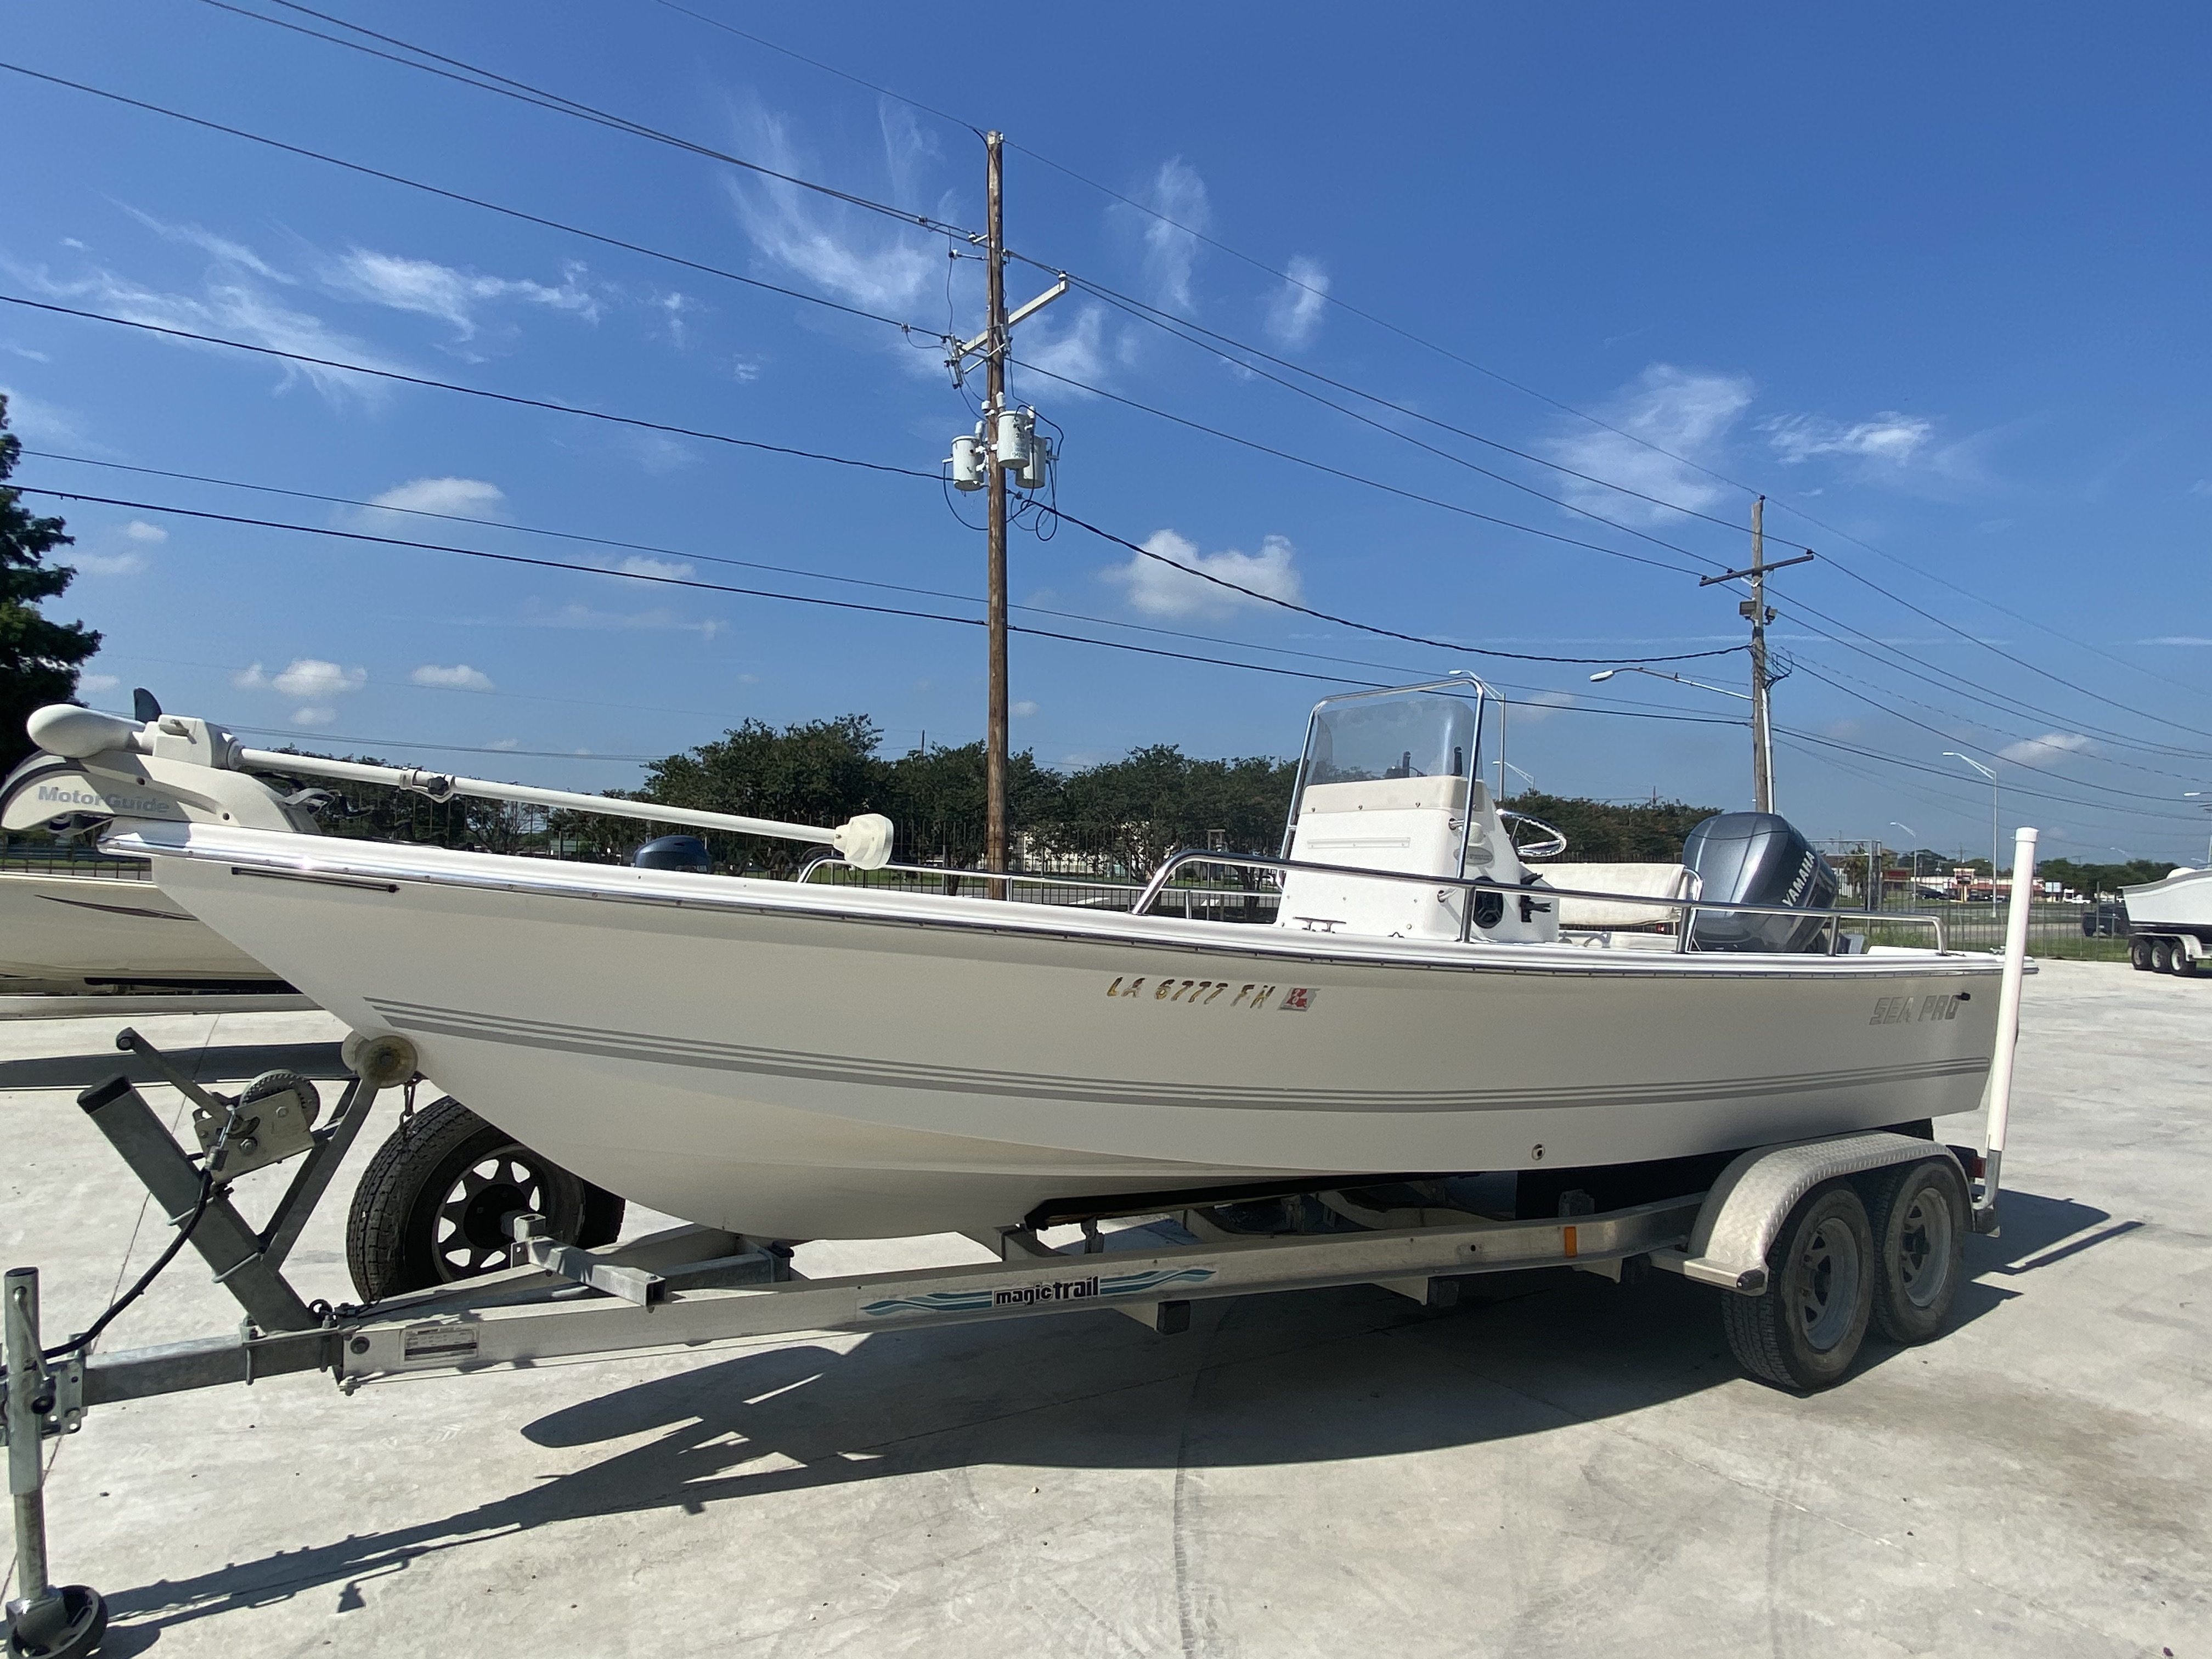 2003 Sea Pro boat for sale, model of the boat is SV2100 & Image # 10 of 12